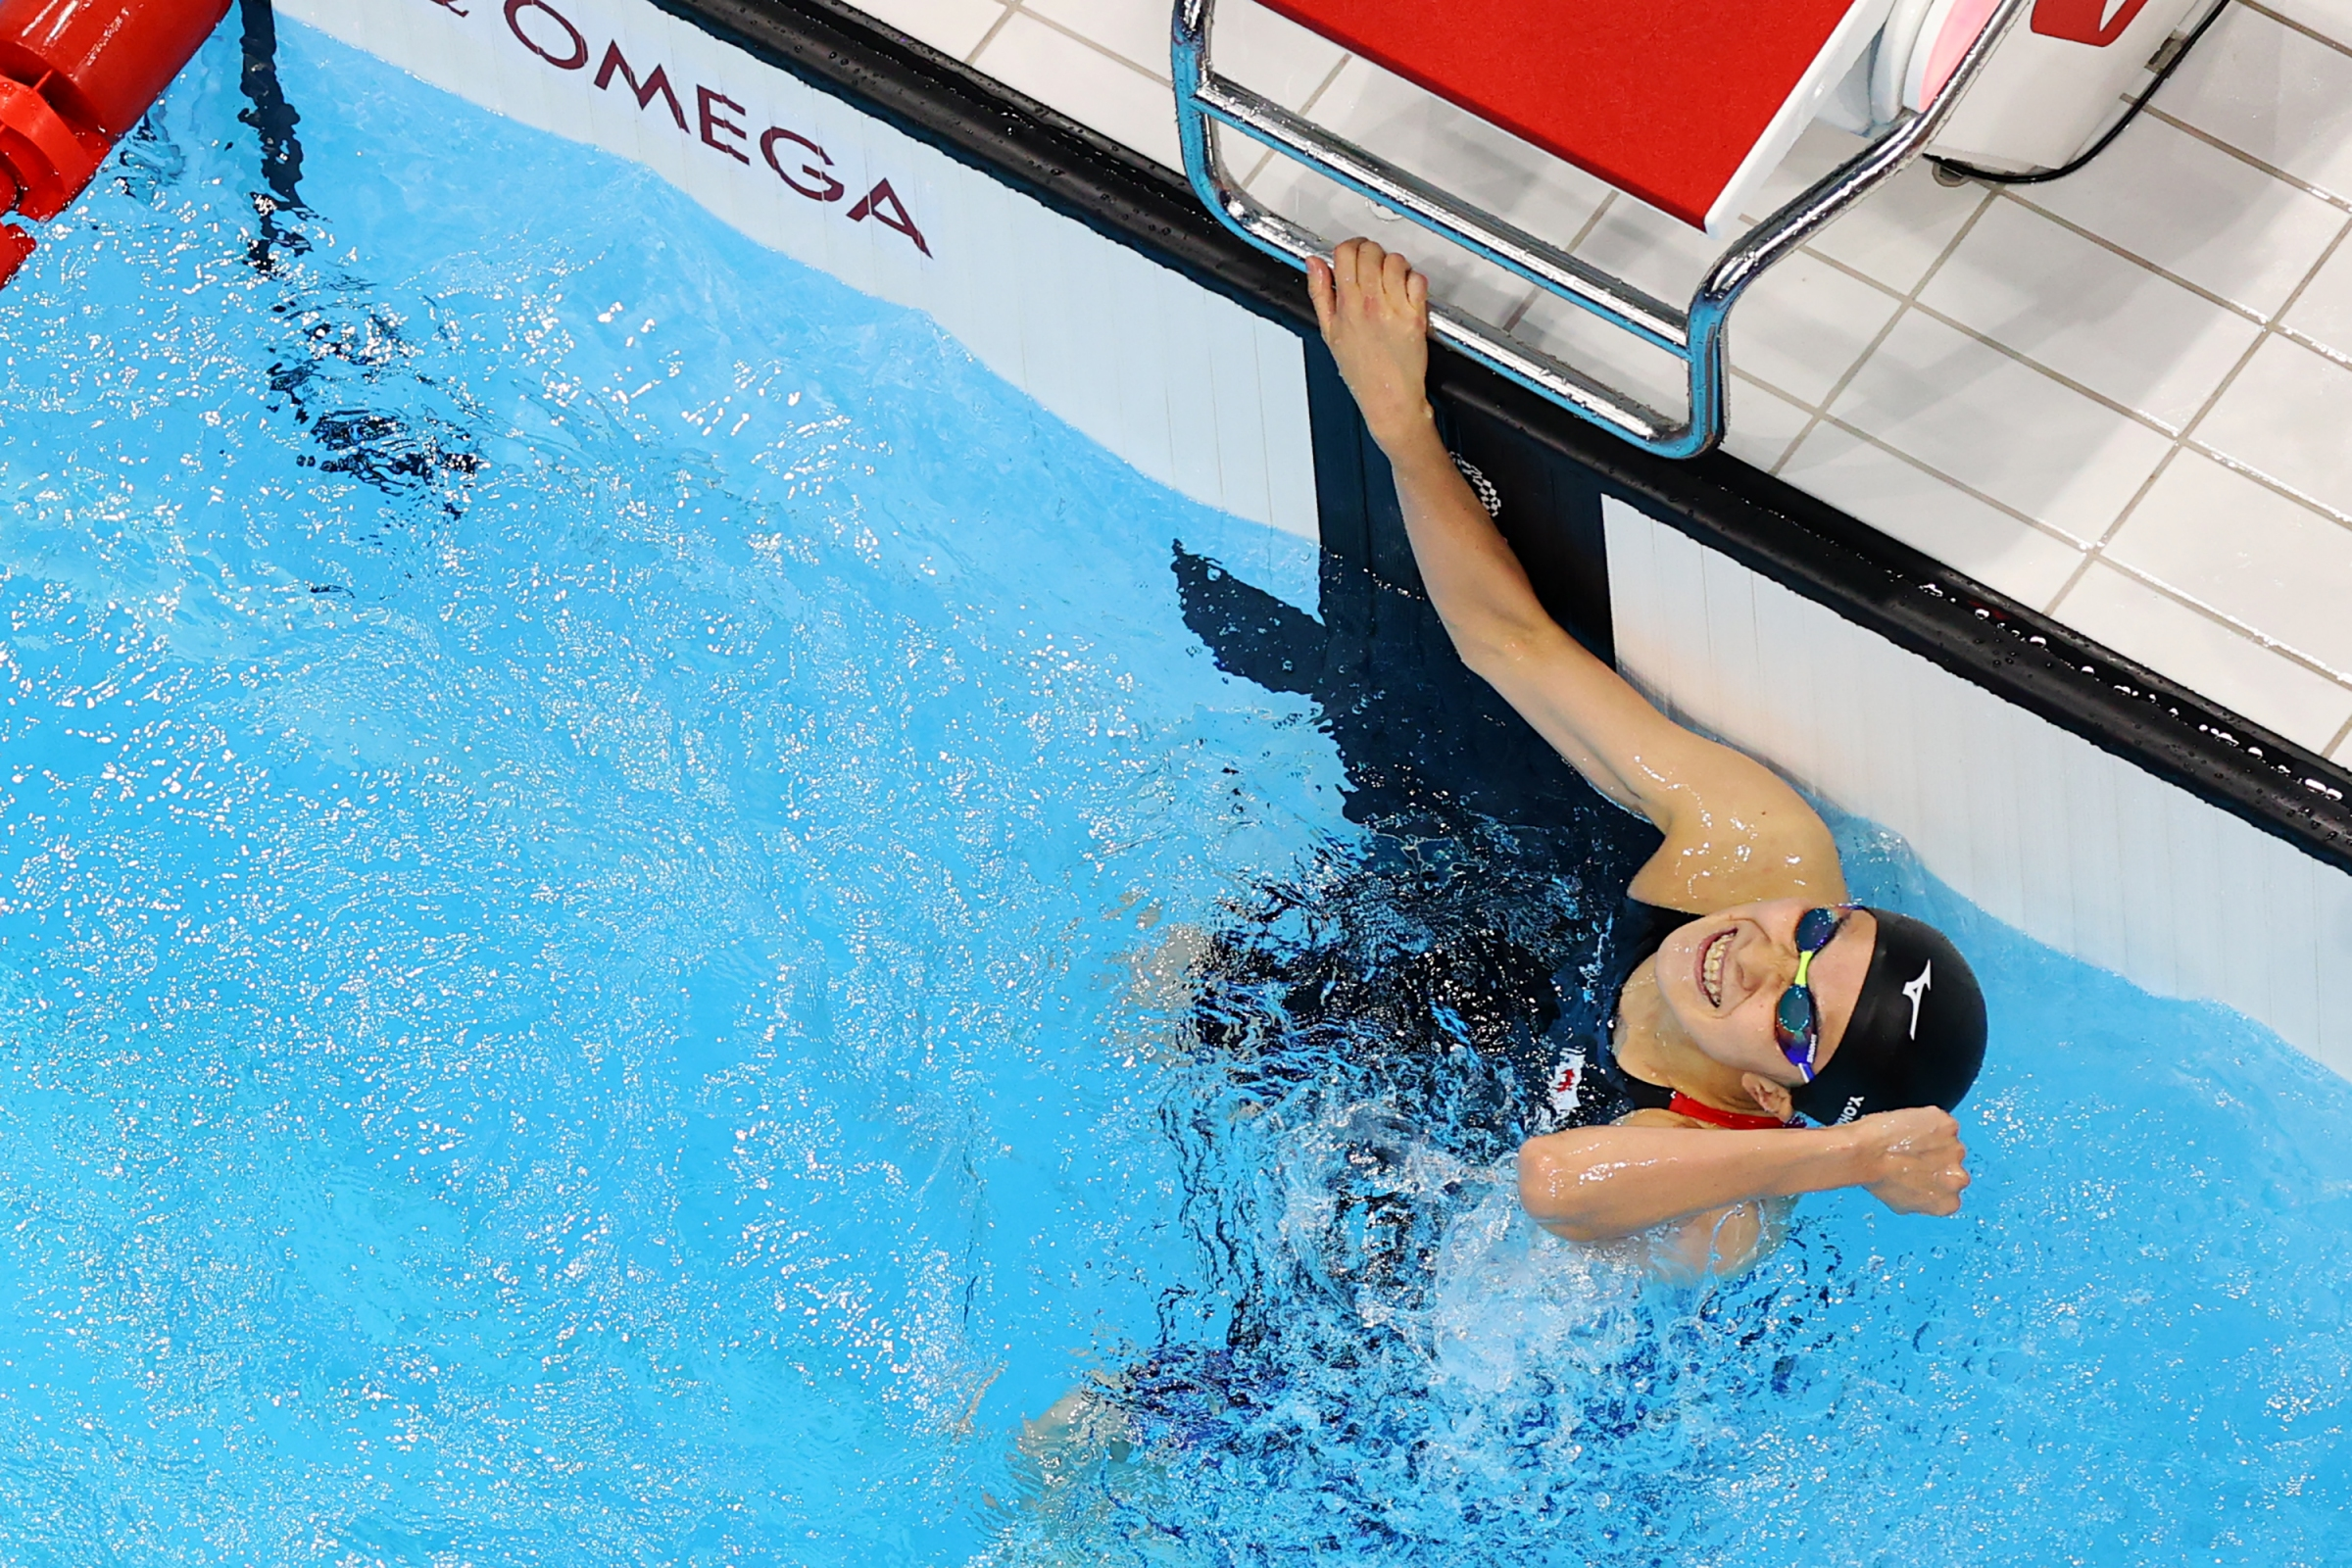 Yui Ohashi of Team Japan celebrates after winning the Women's 200m Individual Medley Final on day five of the Tokyo 2020 Olympic Games at Tokyo Aquatics Centre on July 28, 2021 in Tokyo, Japan.